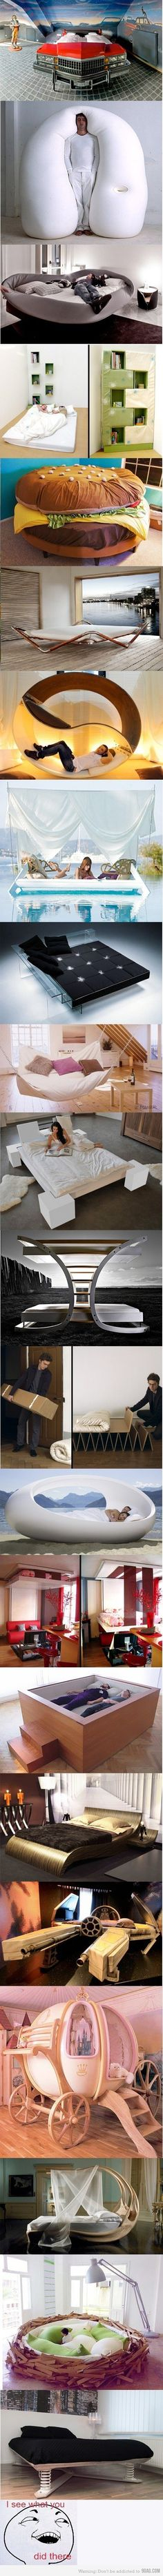 beds..beds..and more beds - Click image to find more Architecture Pinterest pins